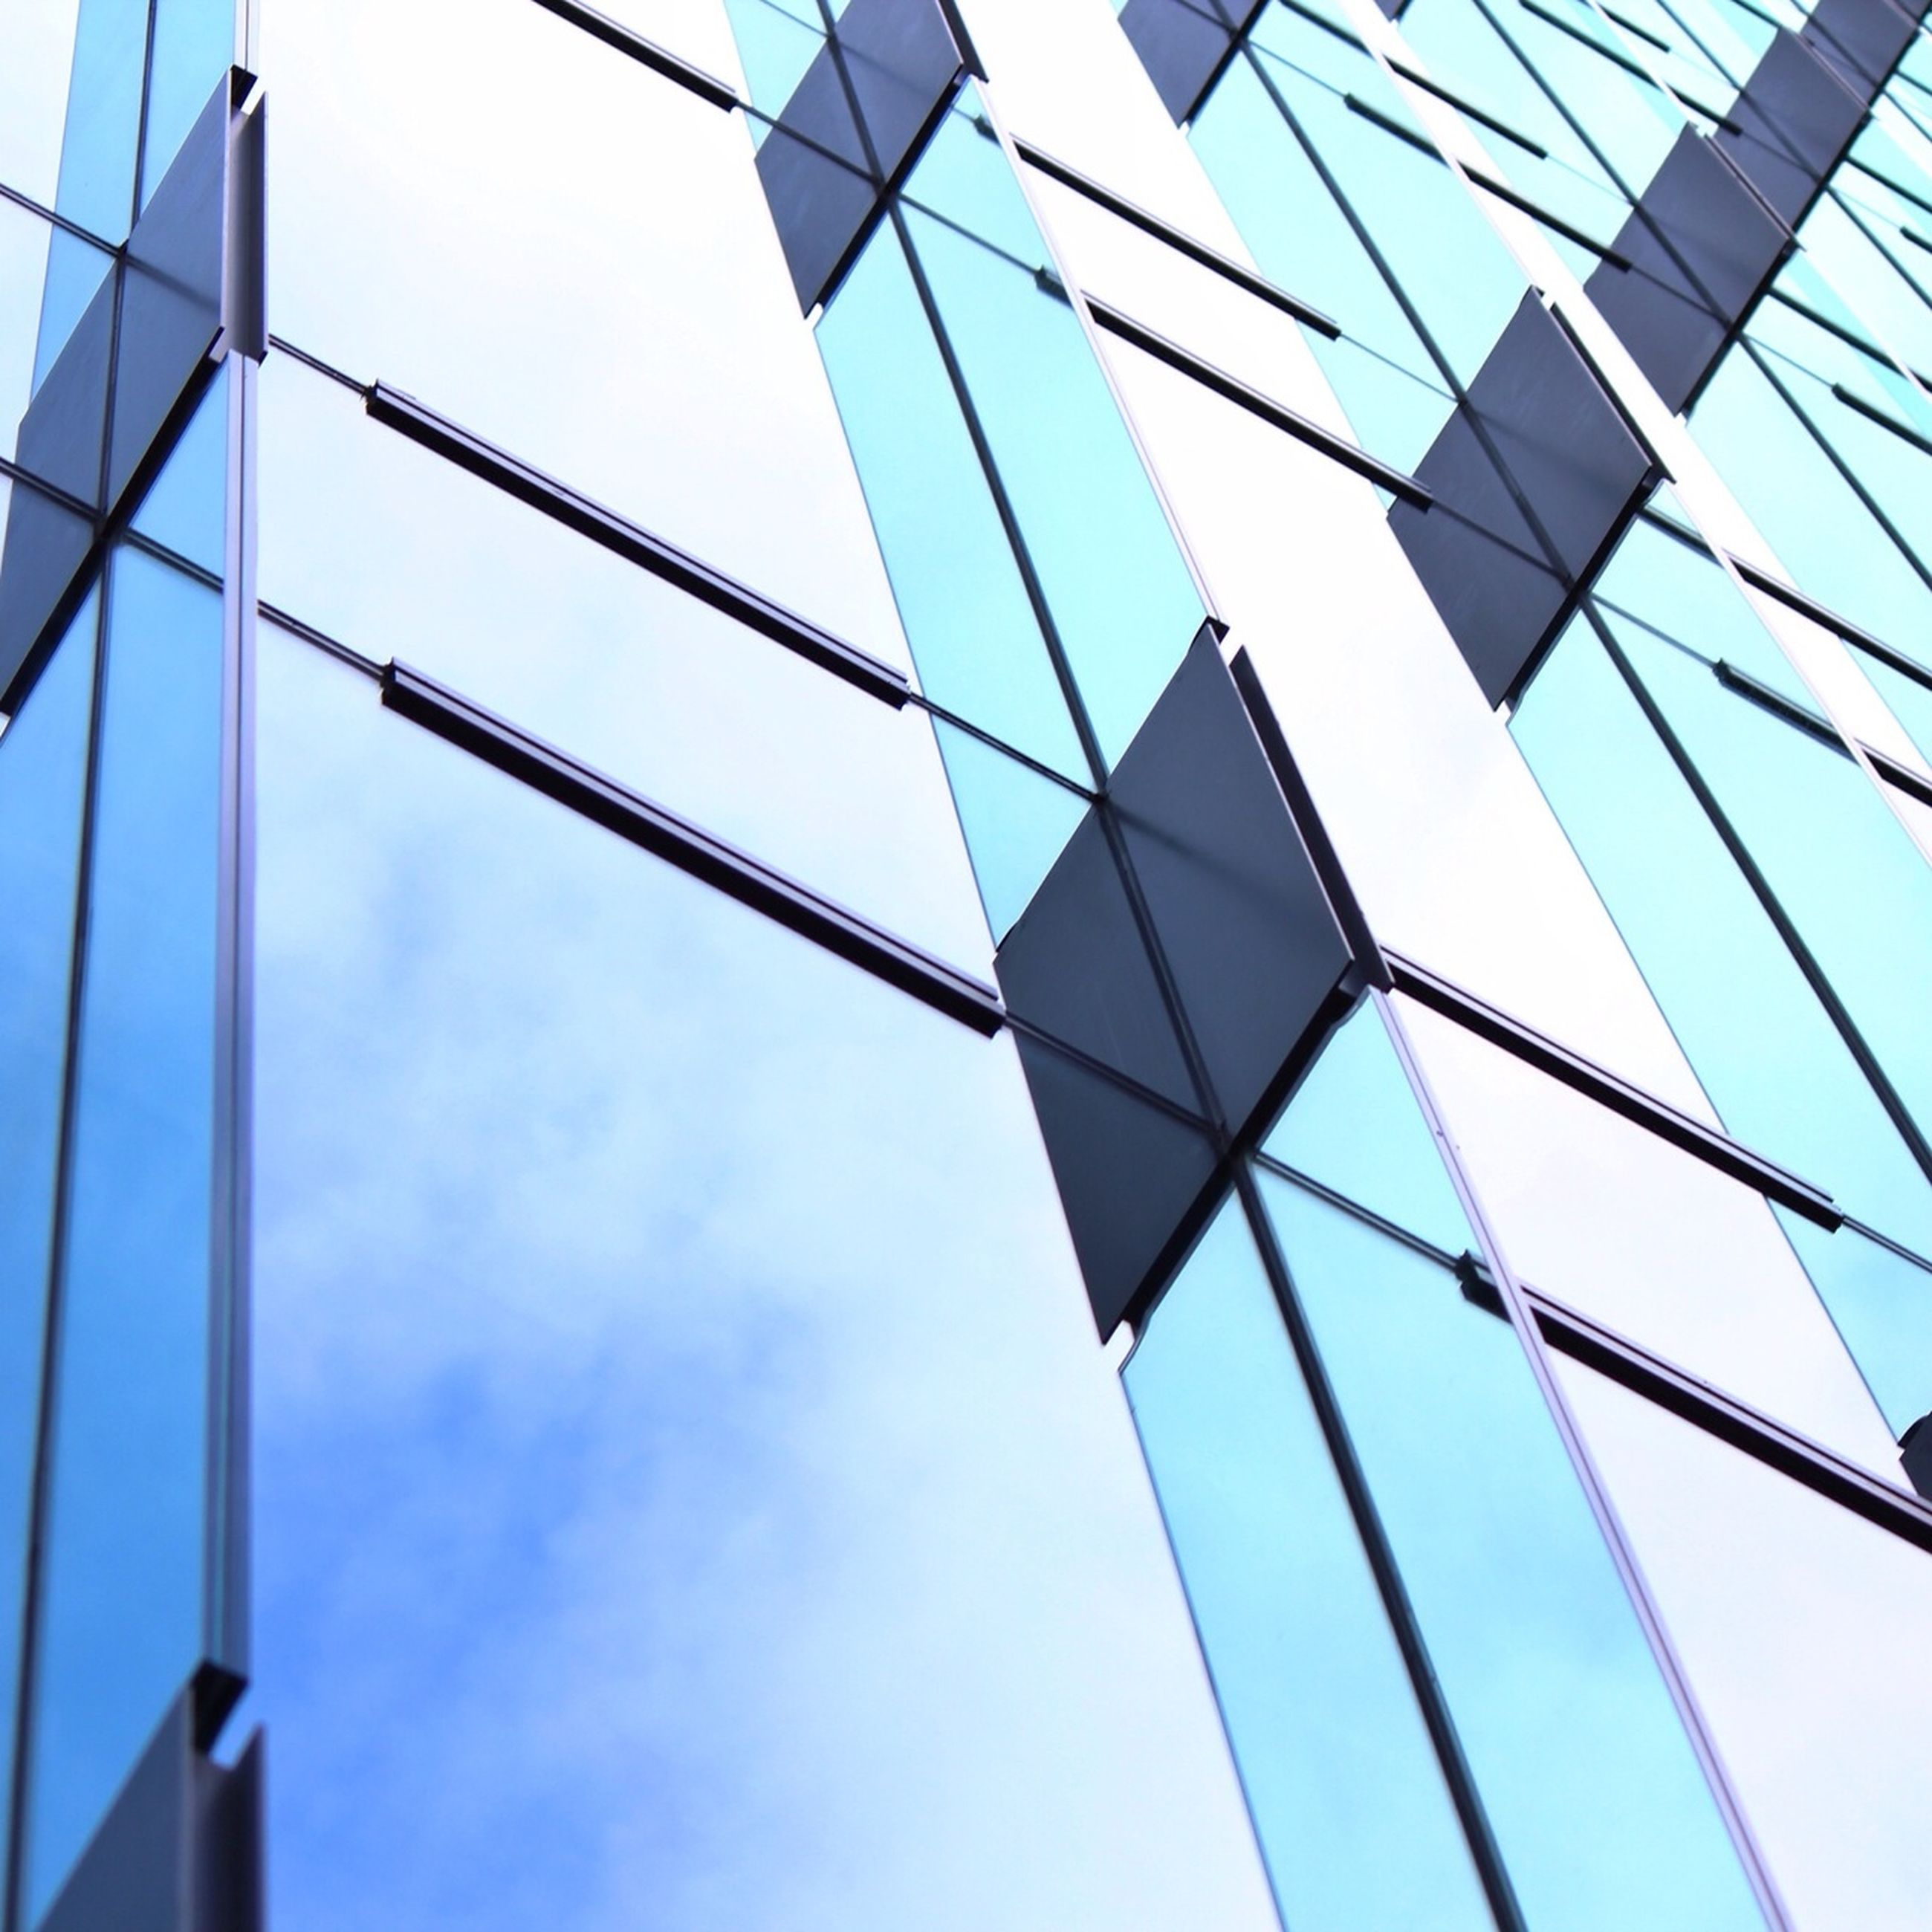 low angle view, architecture, built structure, modern, building exterior, office building, glass - material, sky, reflection, tall - high, skyscraper, building, city, tower, day, glass, cloud - sky, window, no people, directly below